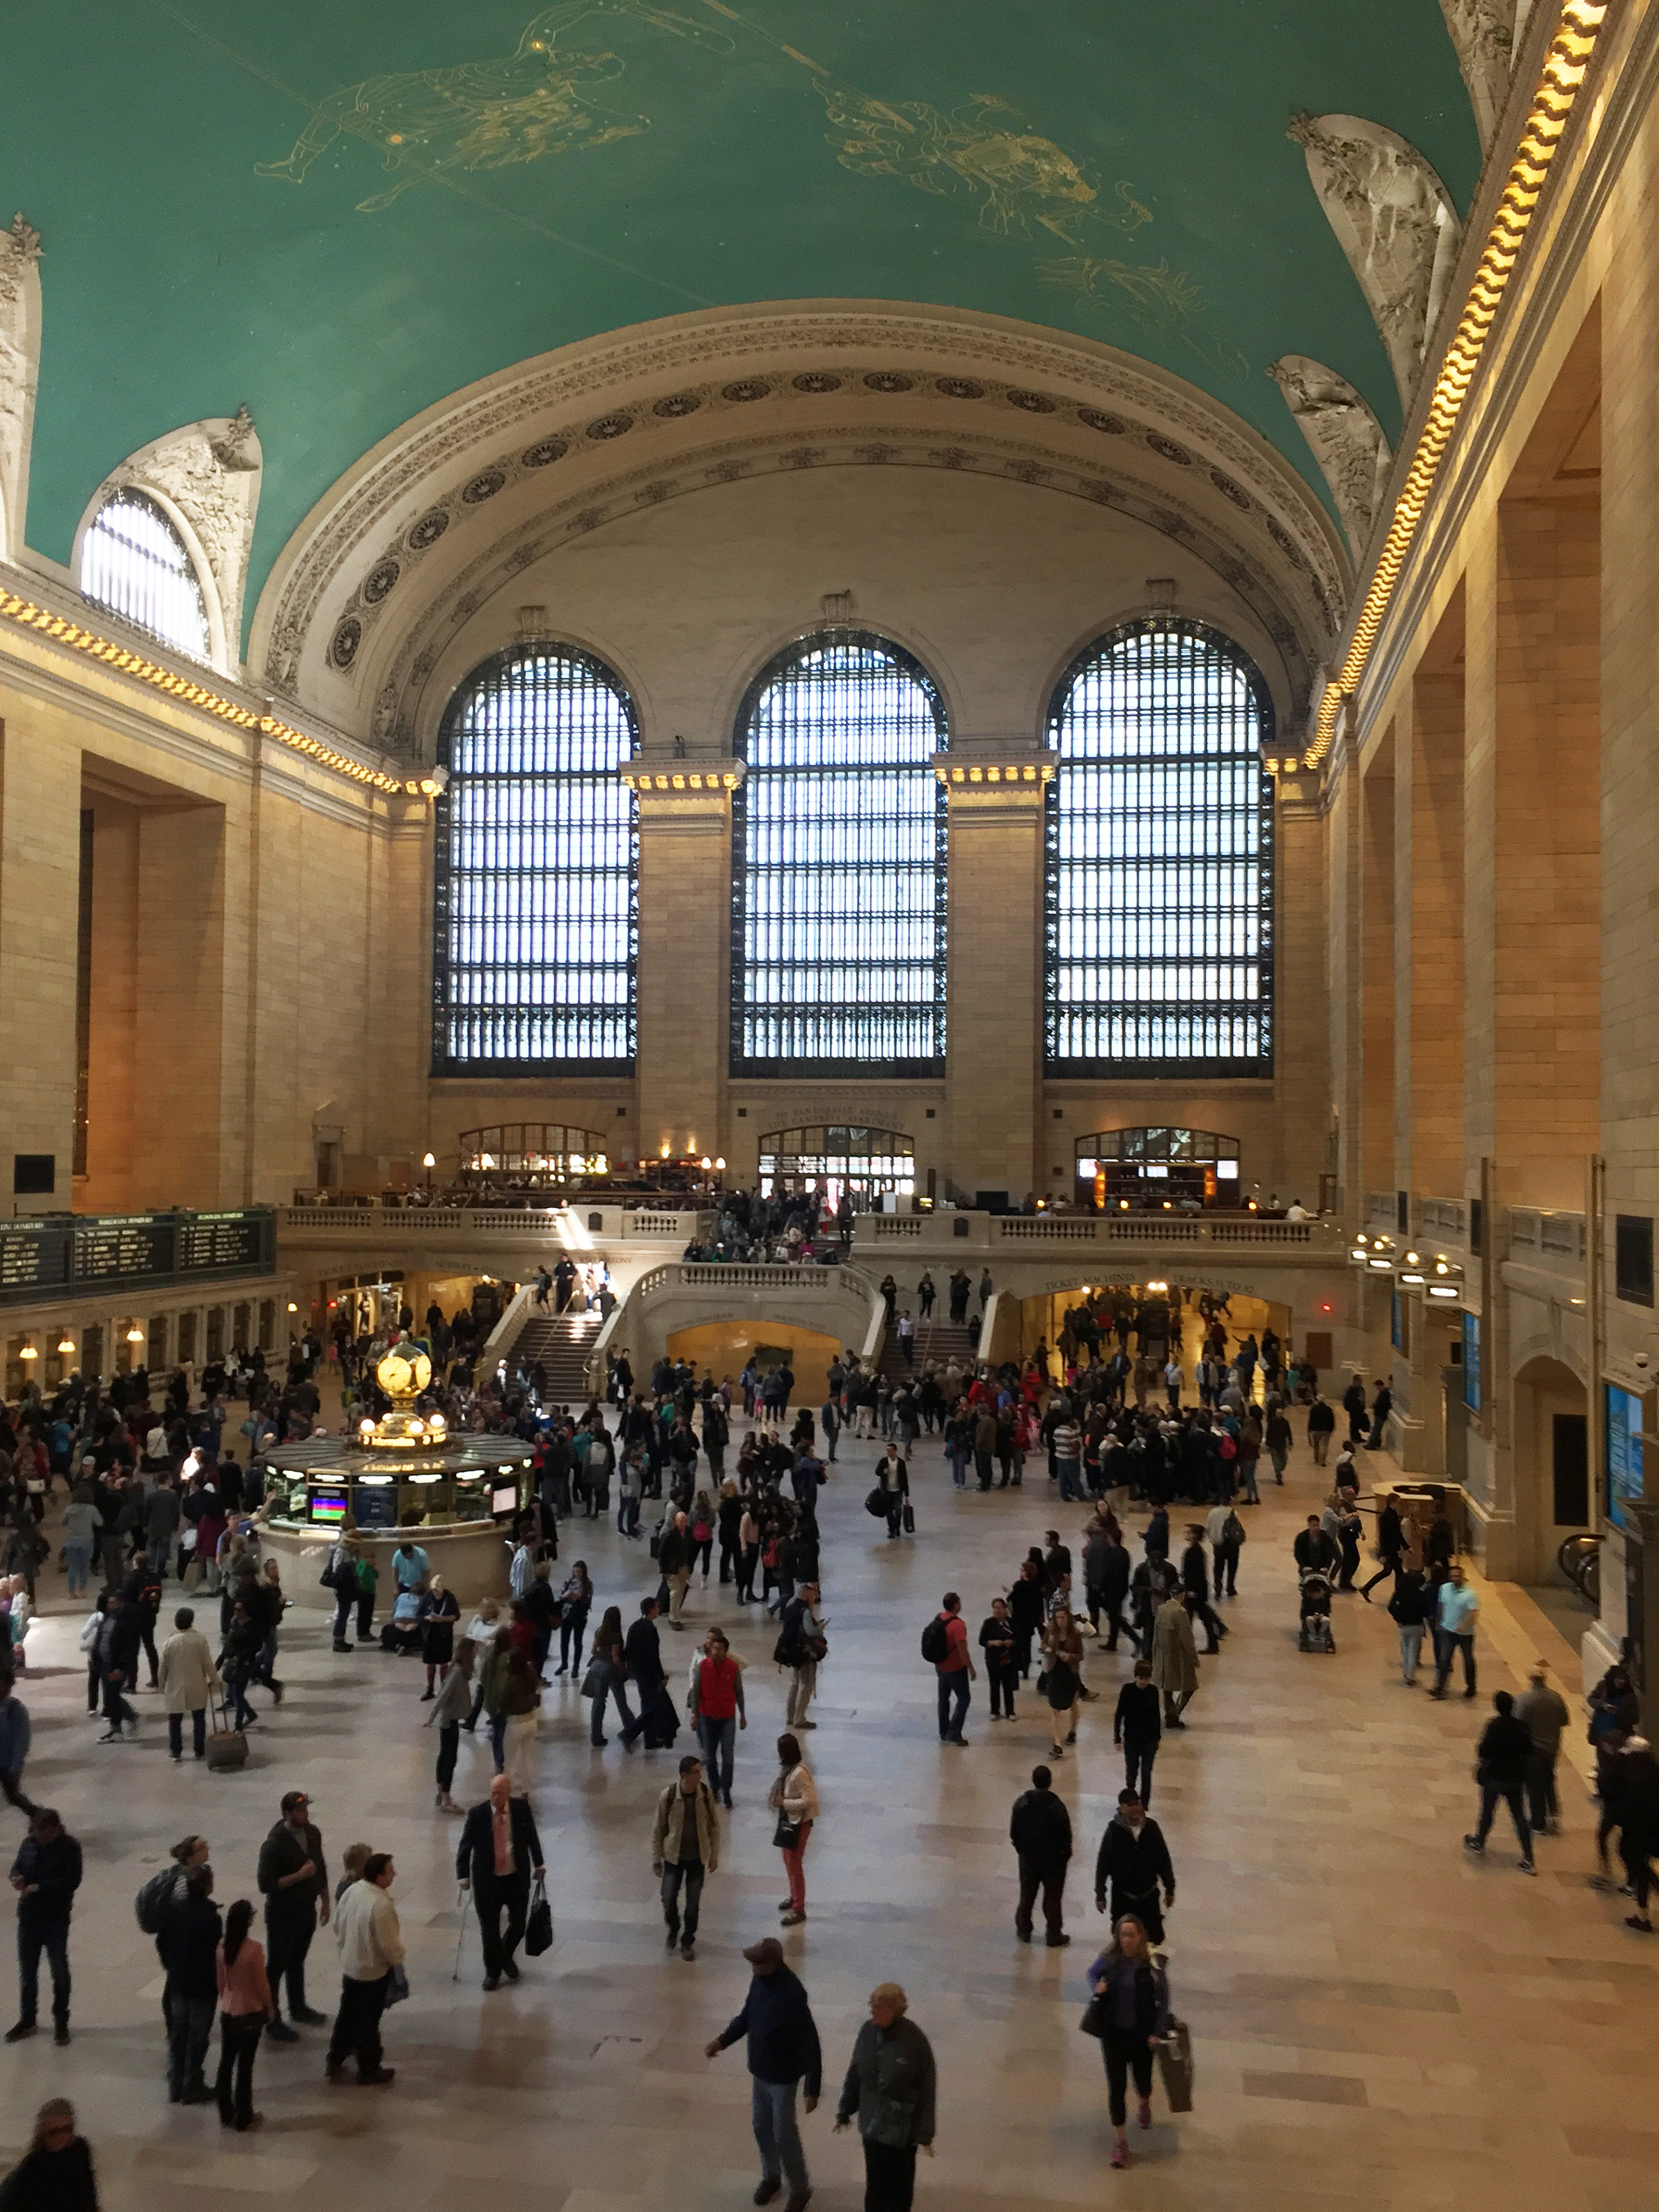 Grand Central Terminal Main Concourse during the day